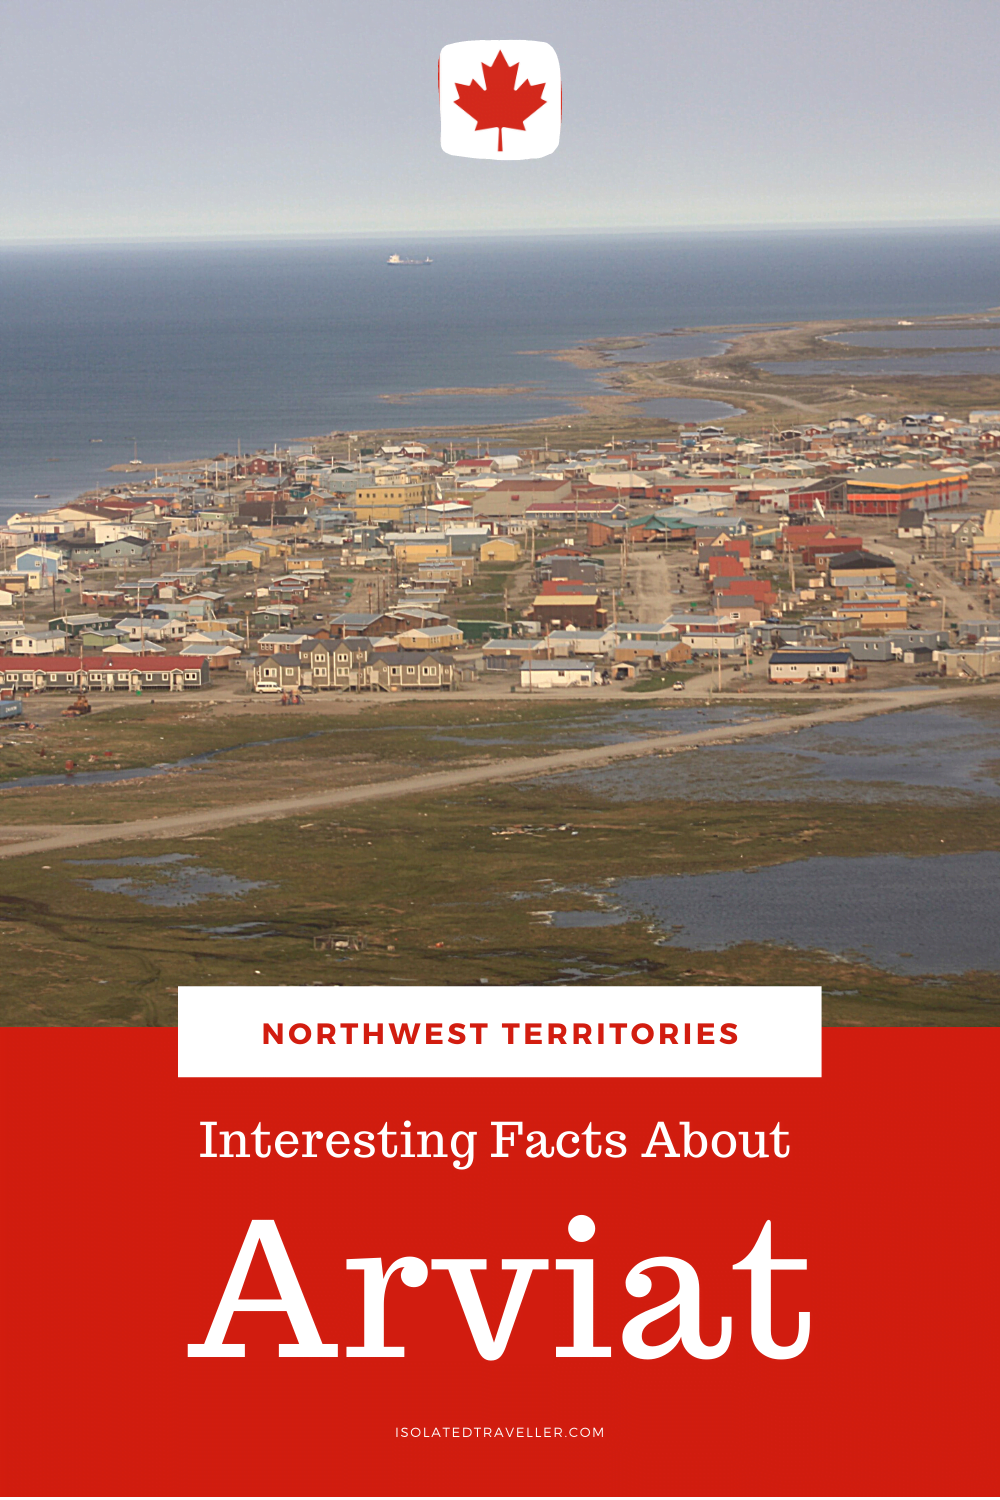 Facts About Arviat